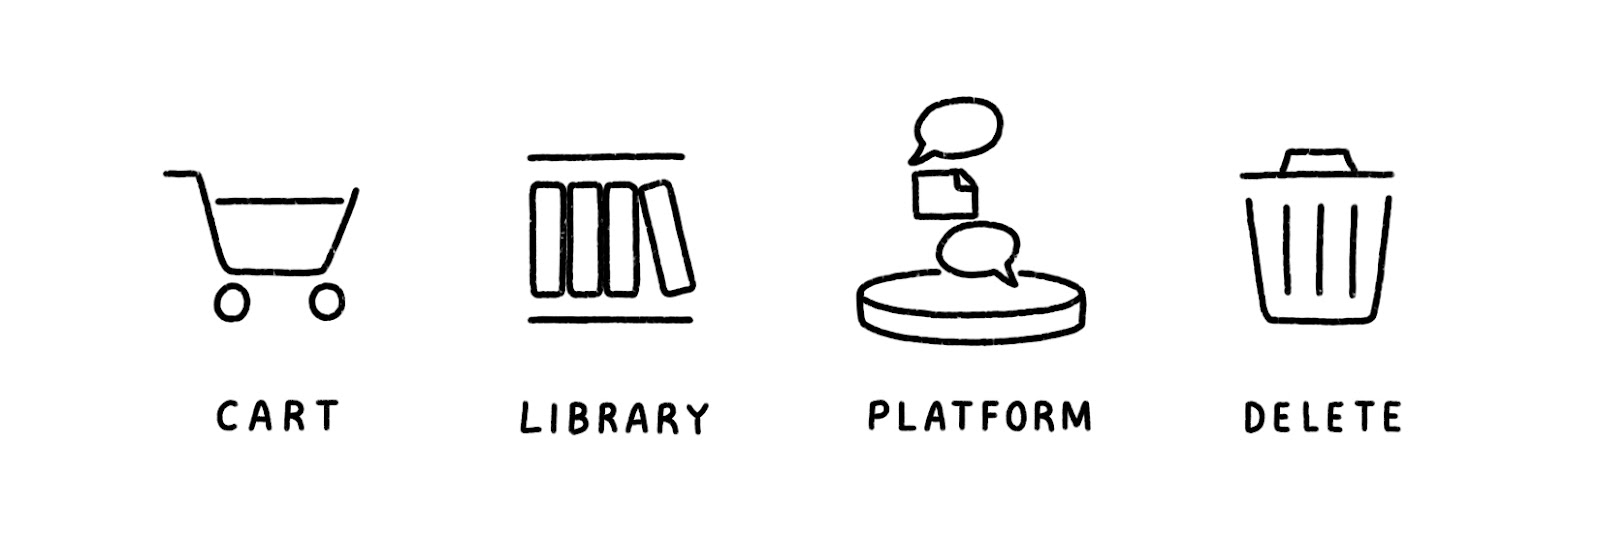 The shopping cart, library, platform, and delete icons are universally understood visual metaphors in design.